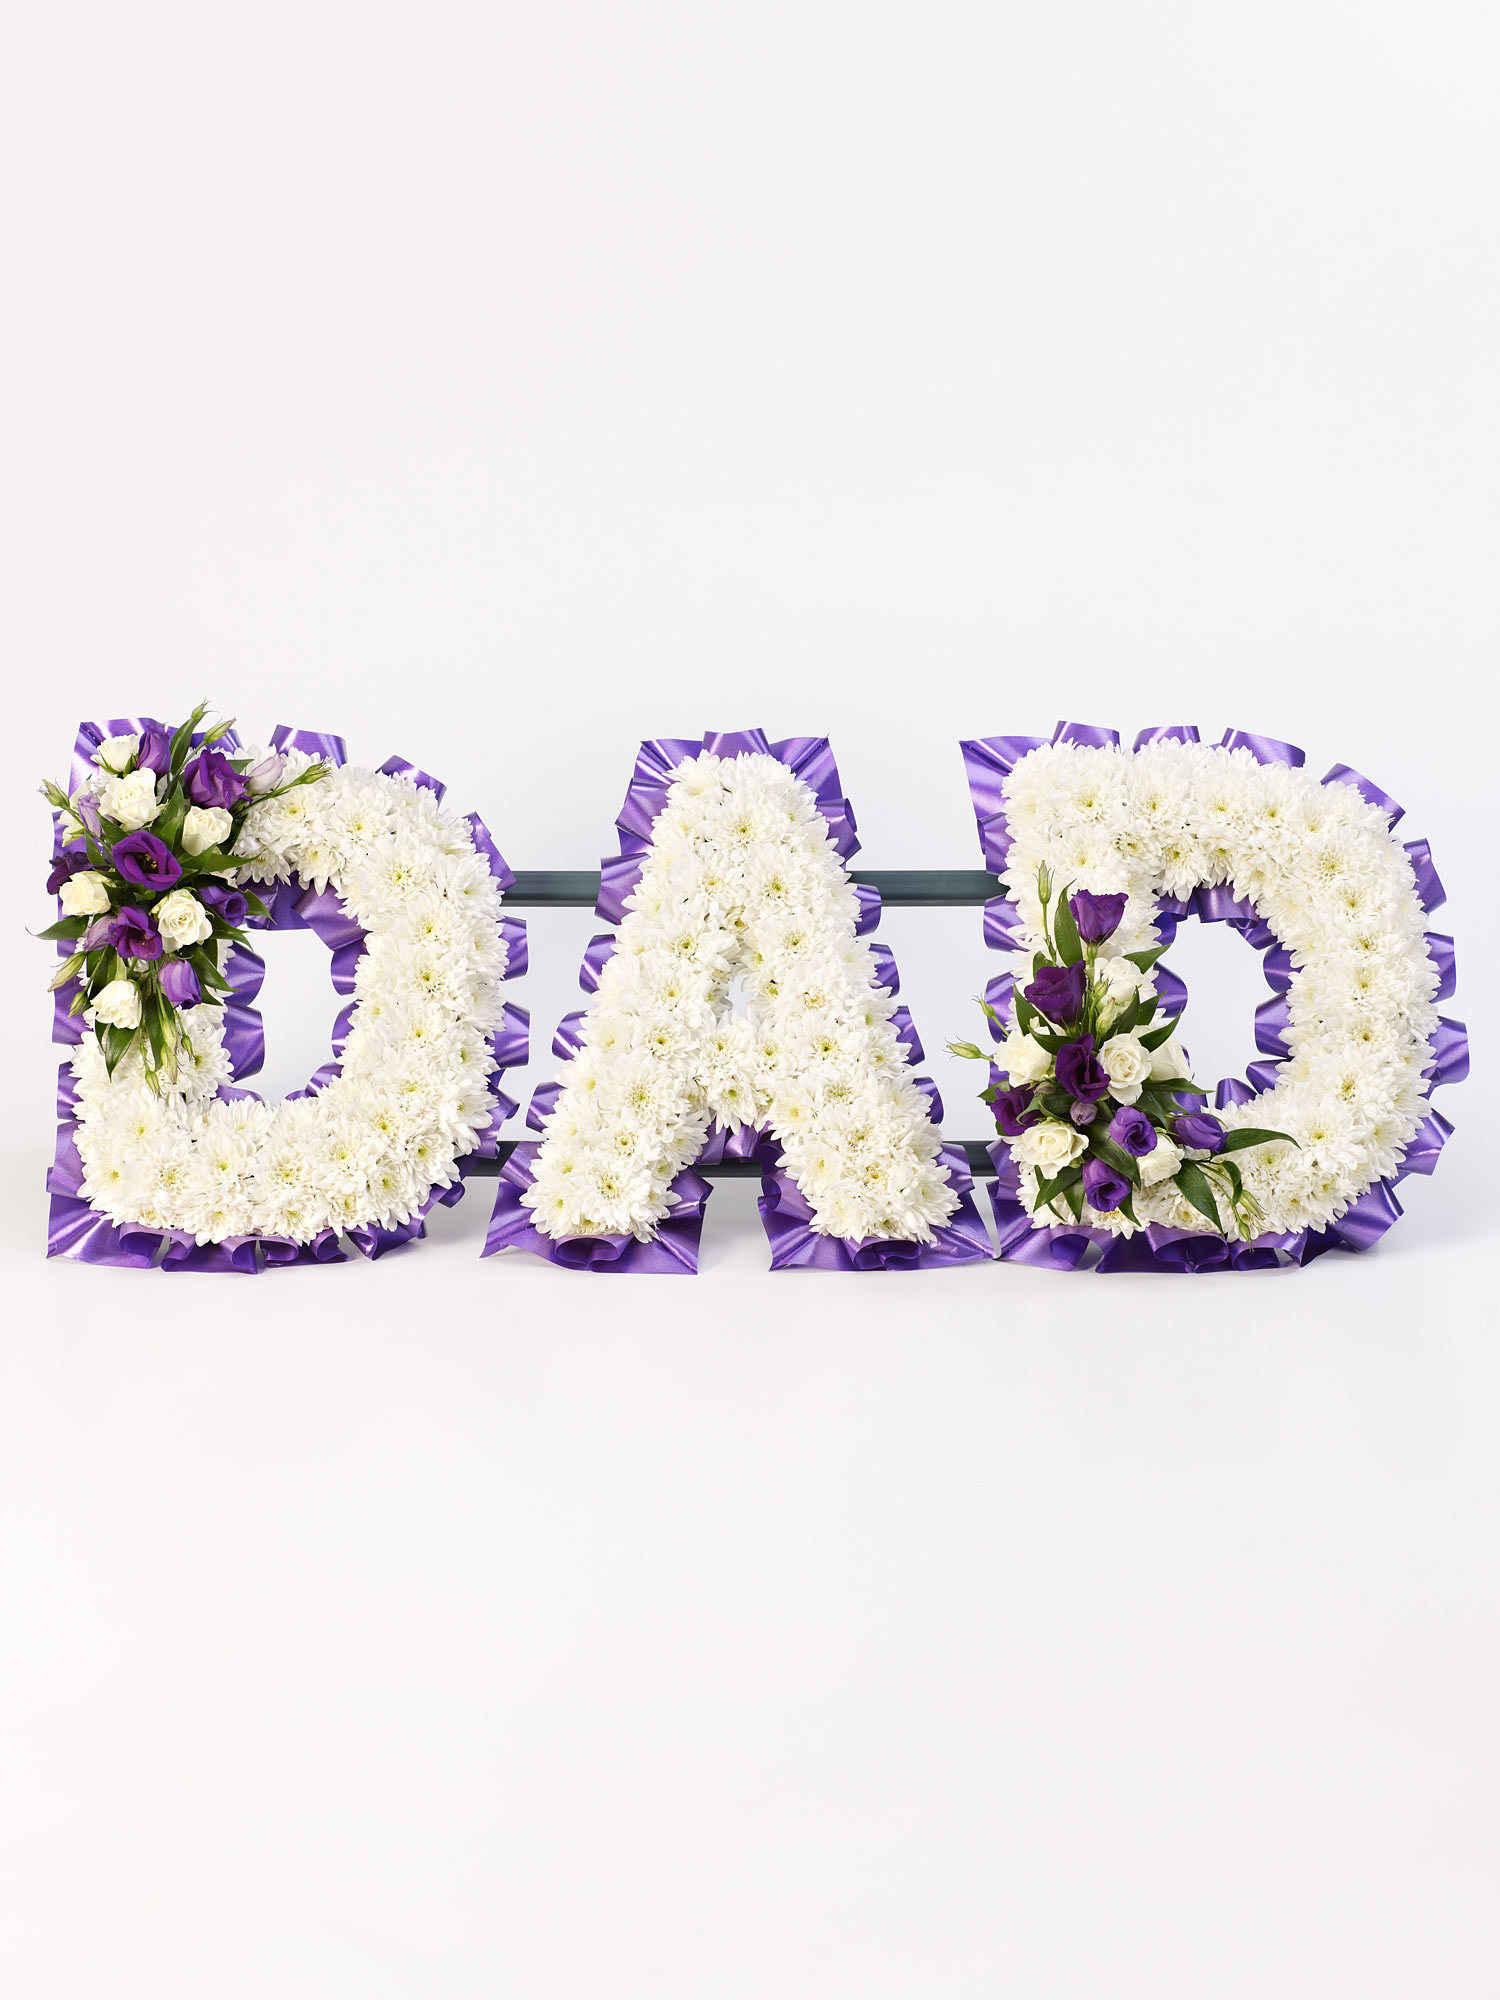 Flowers arranged into letter to form Dad